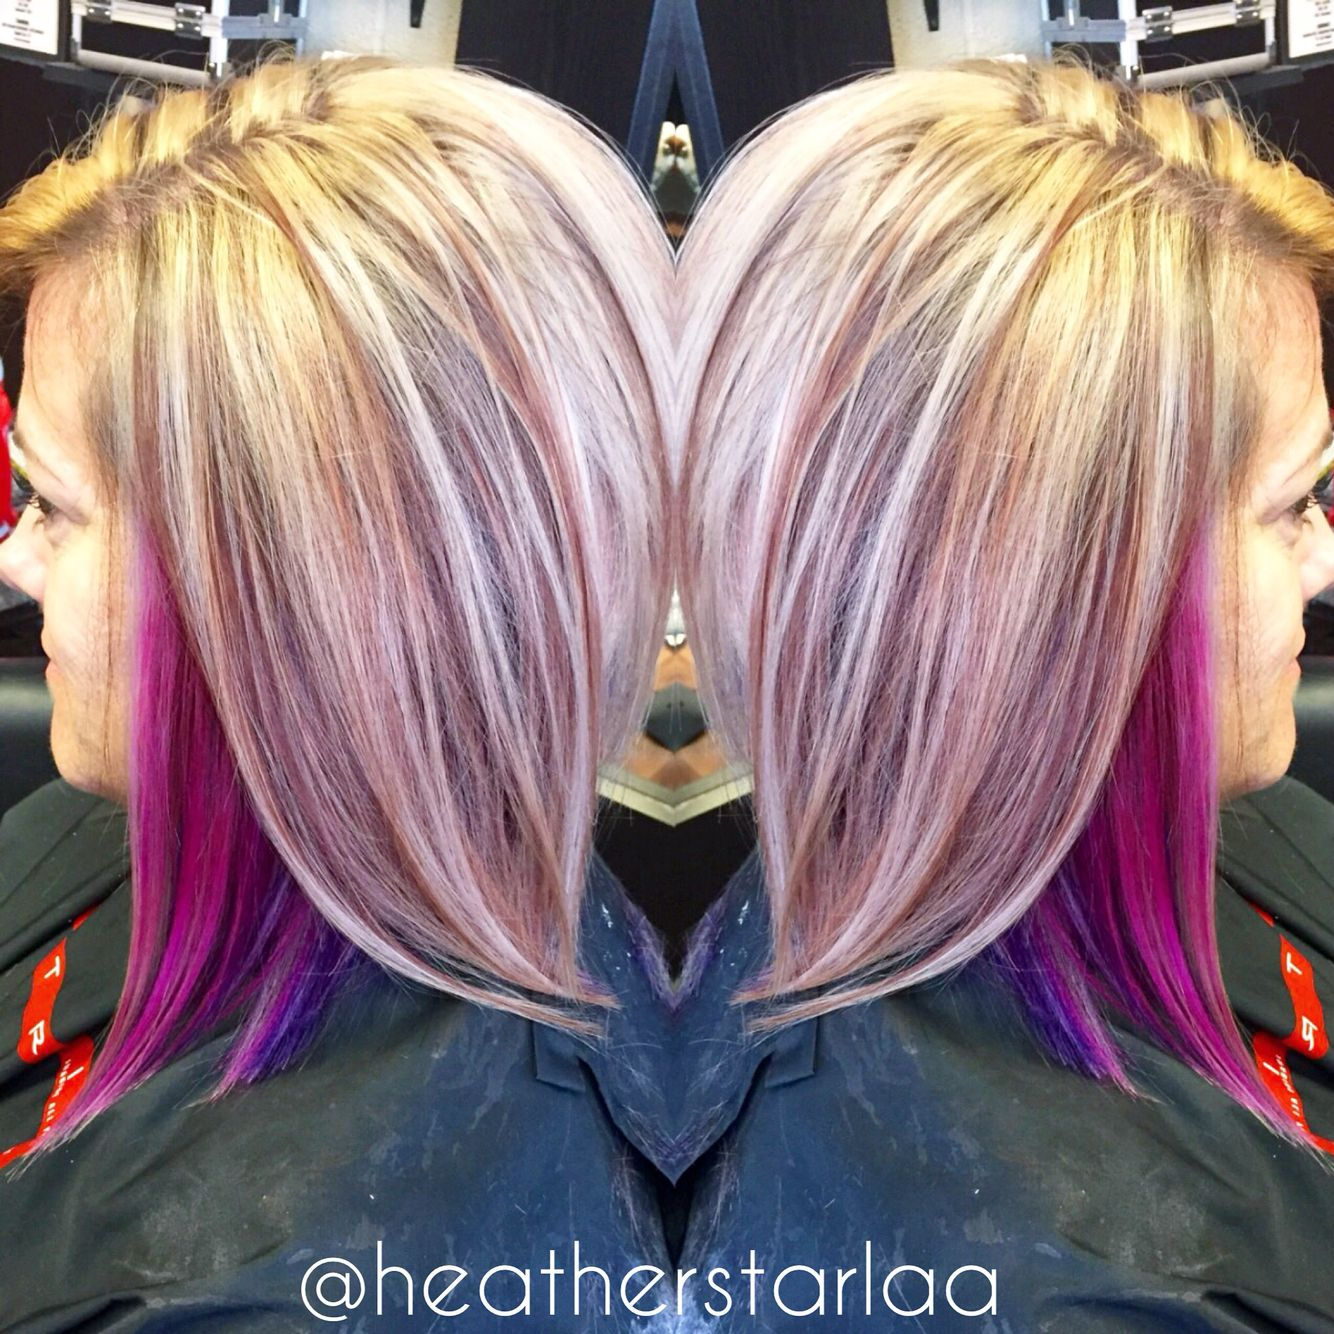 20 Purple Hair With Blonde Peekaboo Highlights Pictures And Ideas